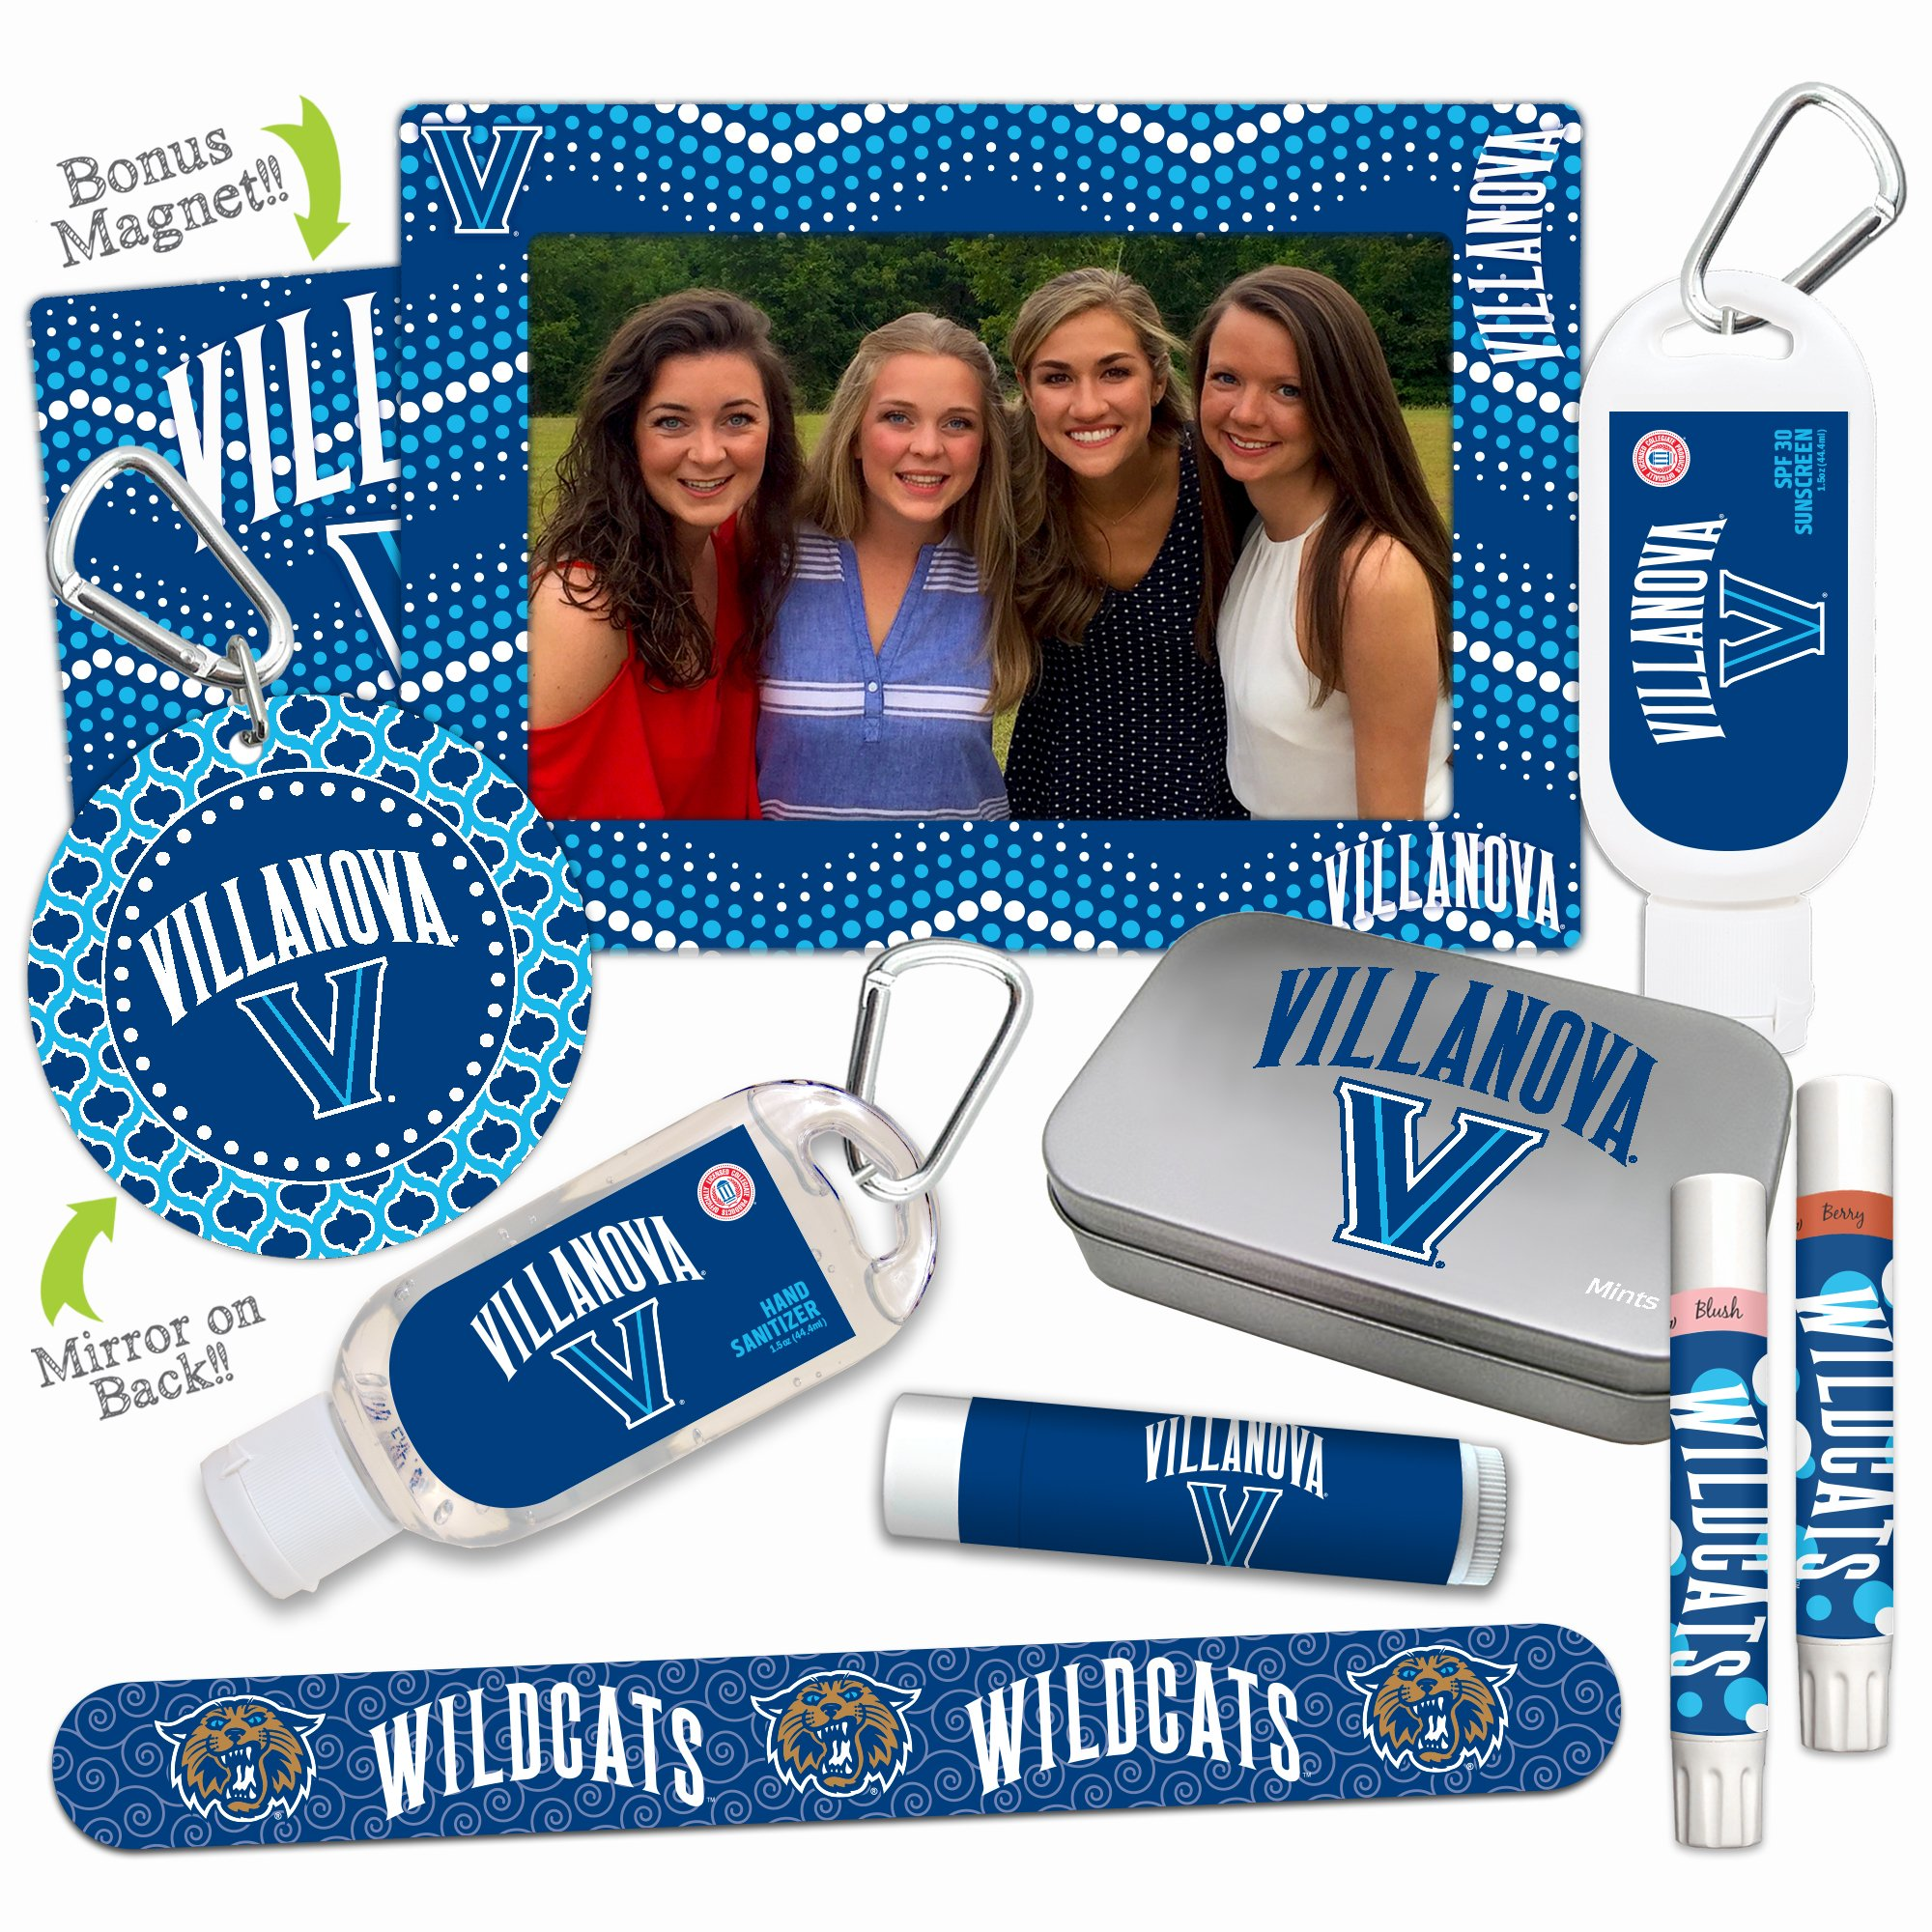 NCAA Villanova Wildcats Platinum Variety Set- with 2 Lip Shimmers, Lip Balm SPF 15, Nail File, Mirror, Sanitizer, Lotion, Mint Tin, Magnetic Picture Frame. Ideal gift for Mother's Day. Basketball.